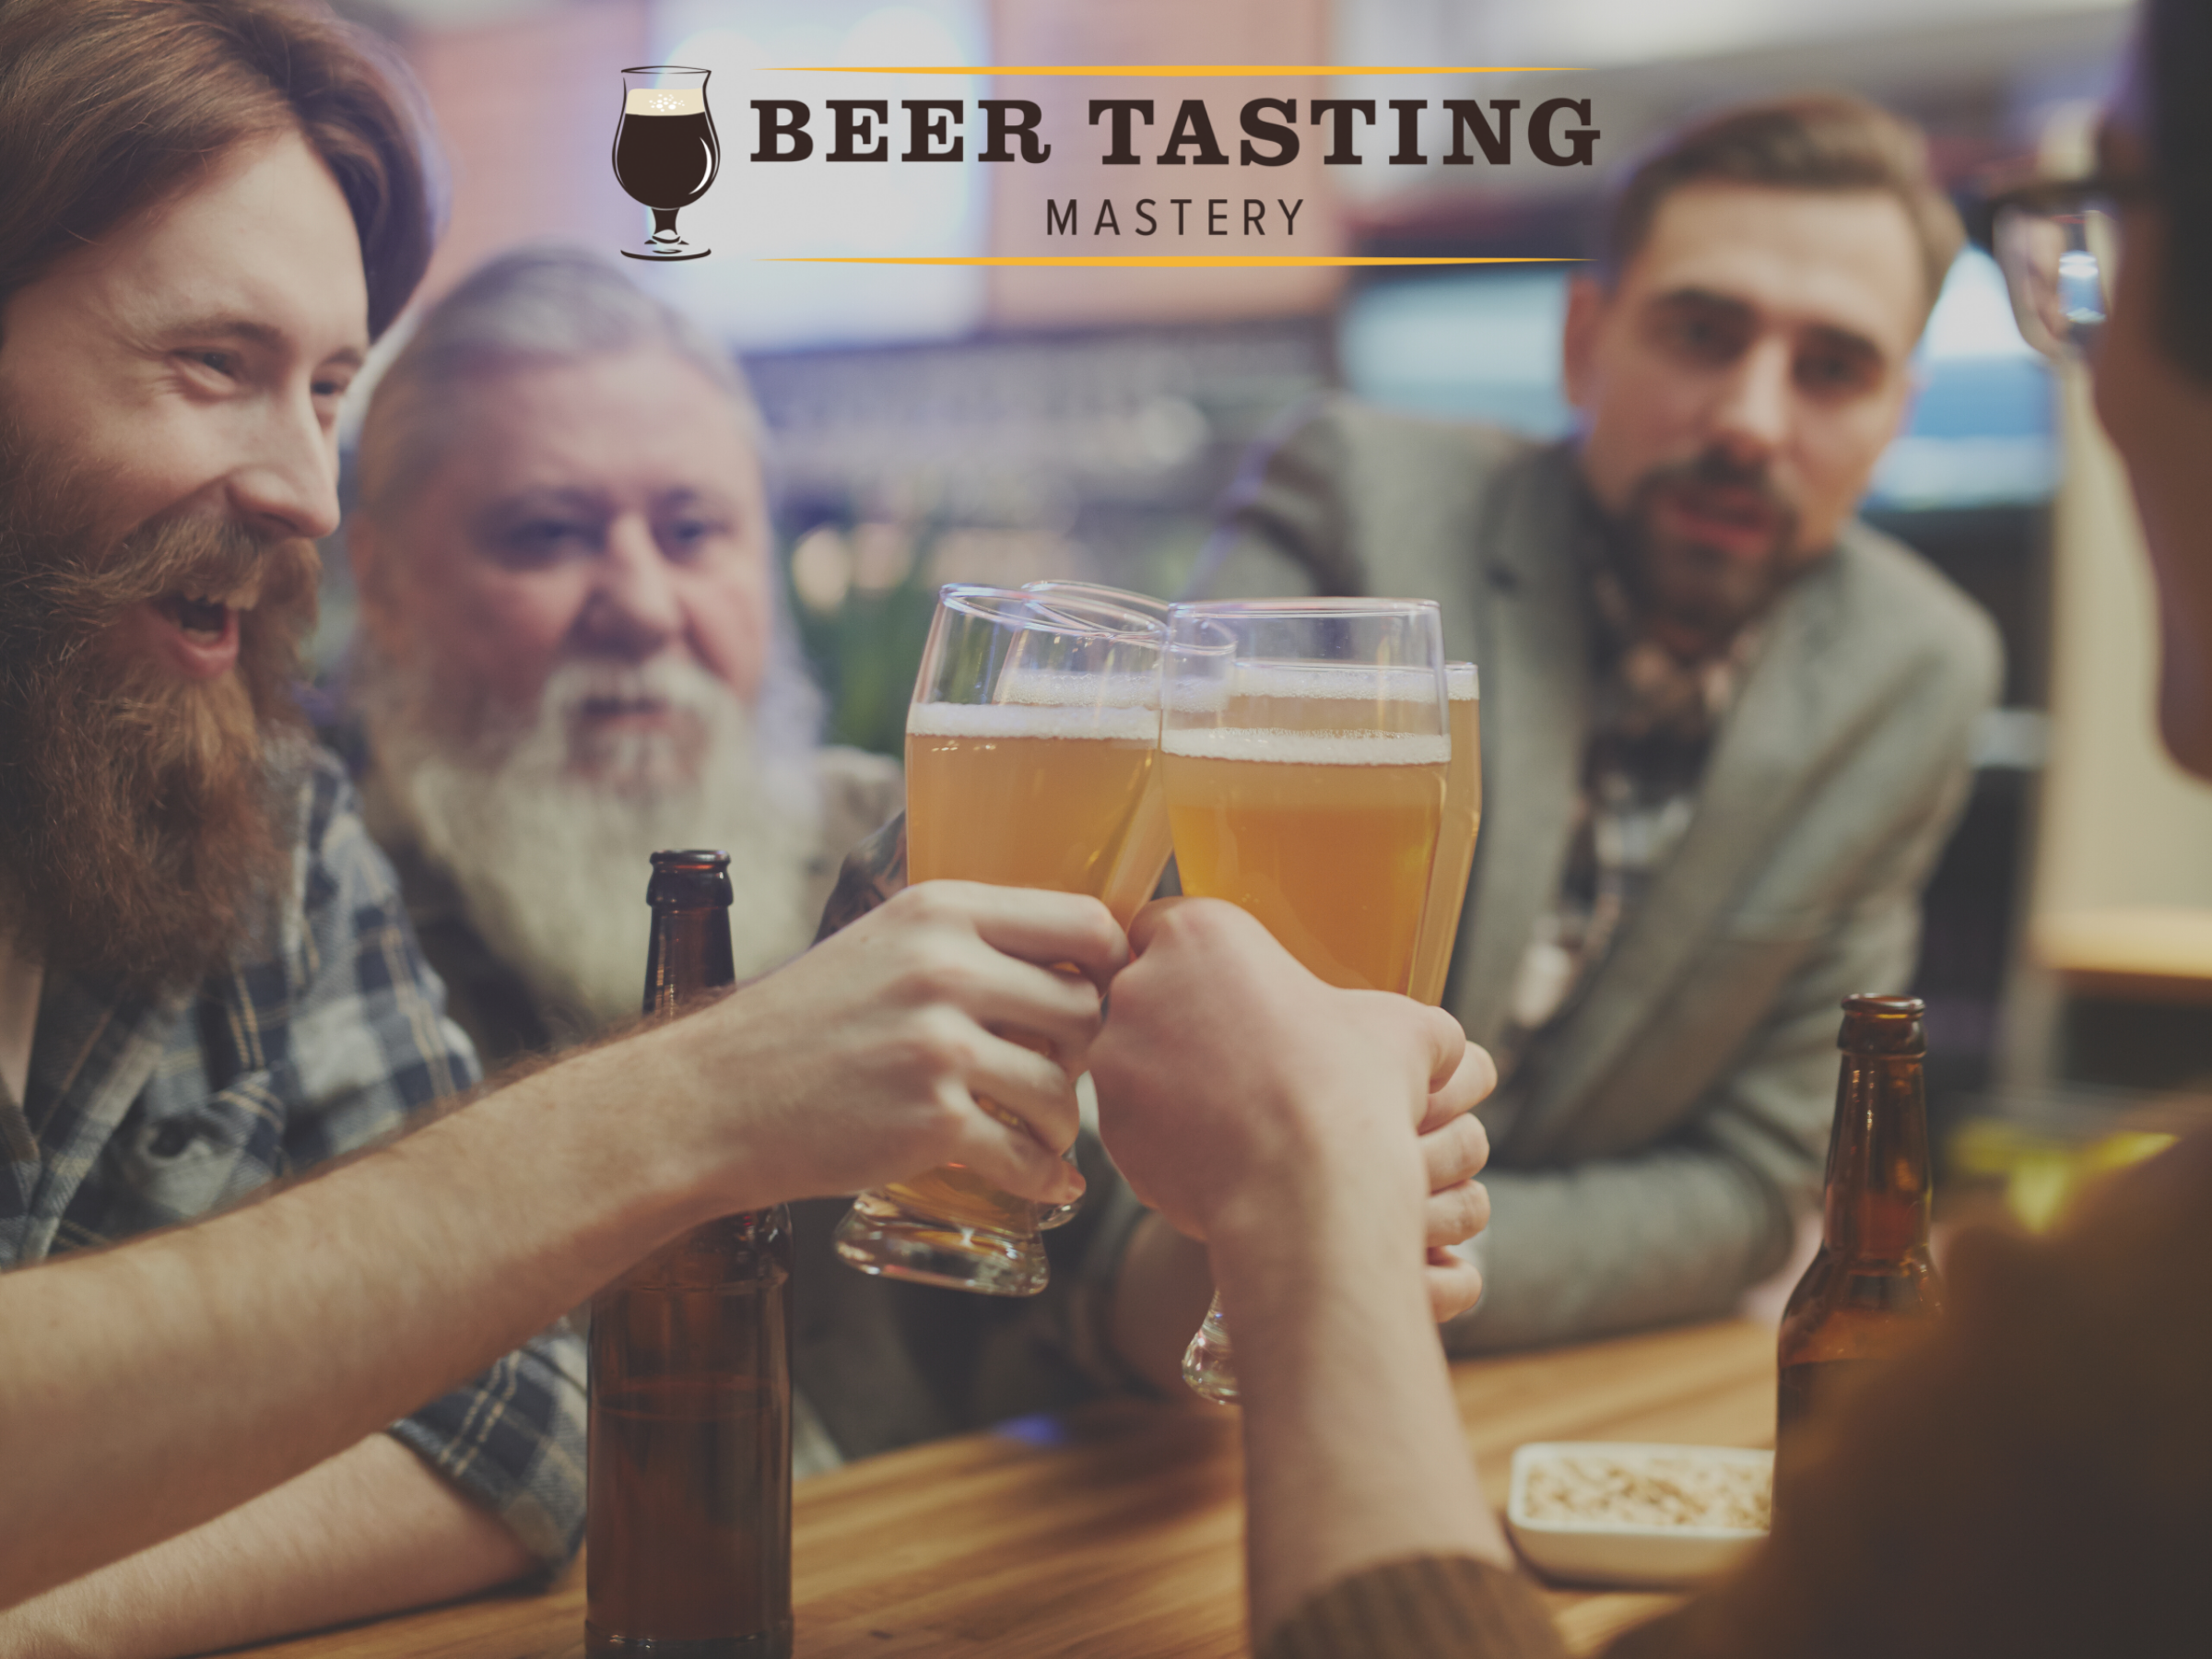 Beer Tasting Mastery Course